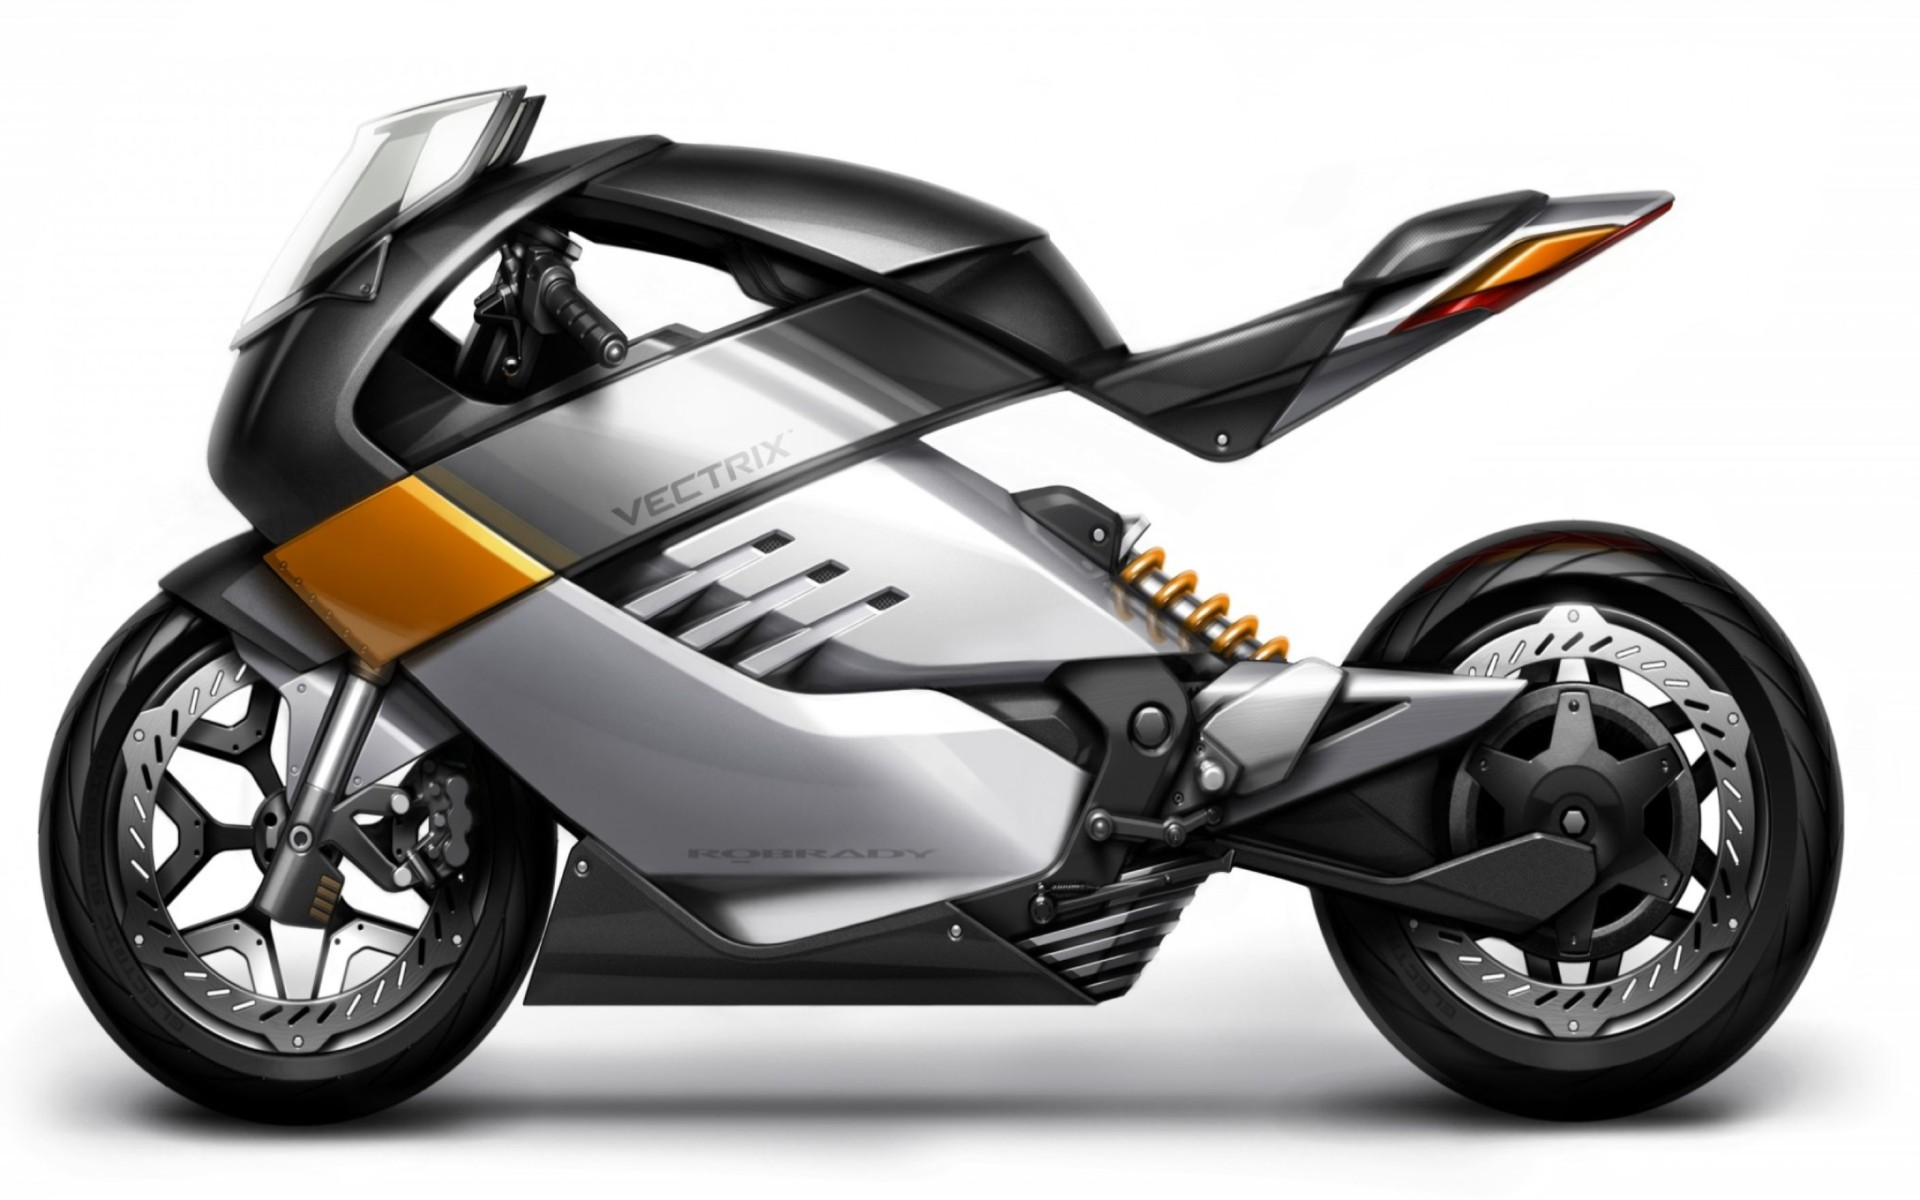 Vectrix Concept Electric Motorcycle Wallpaper